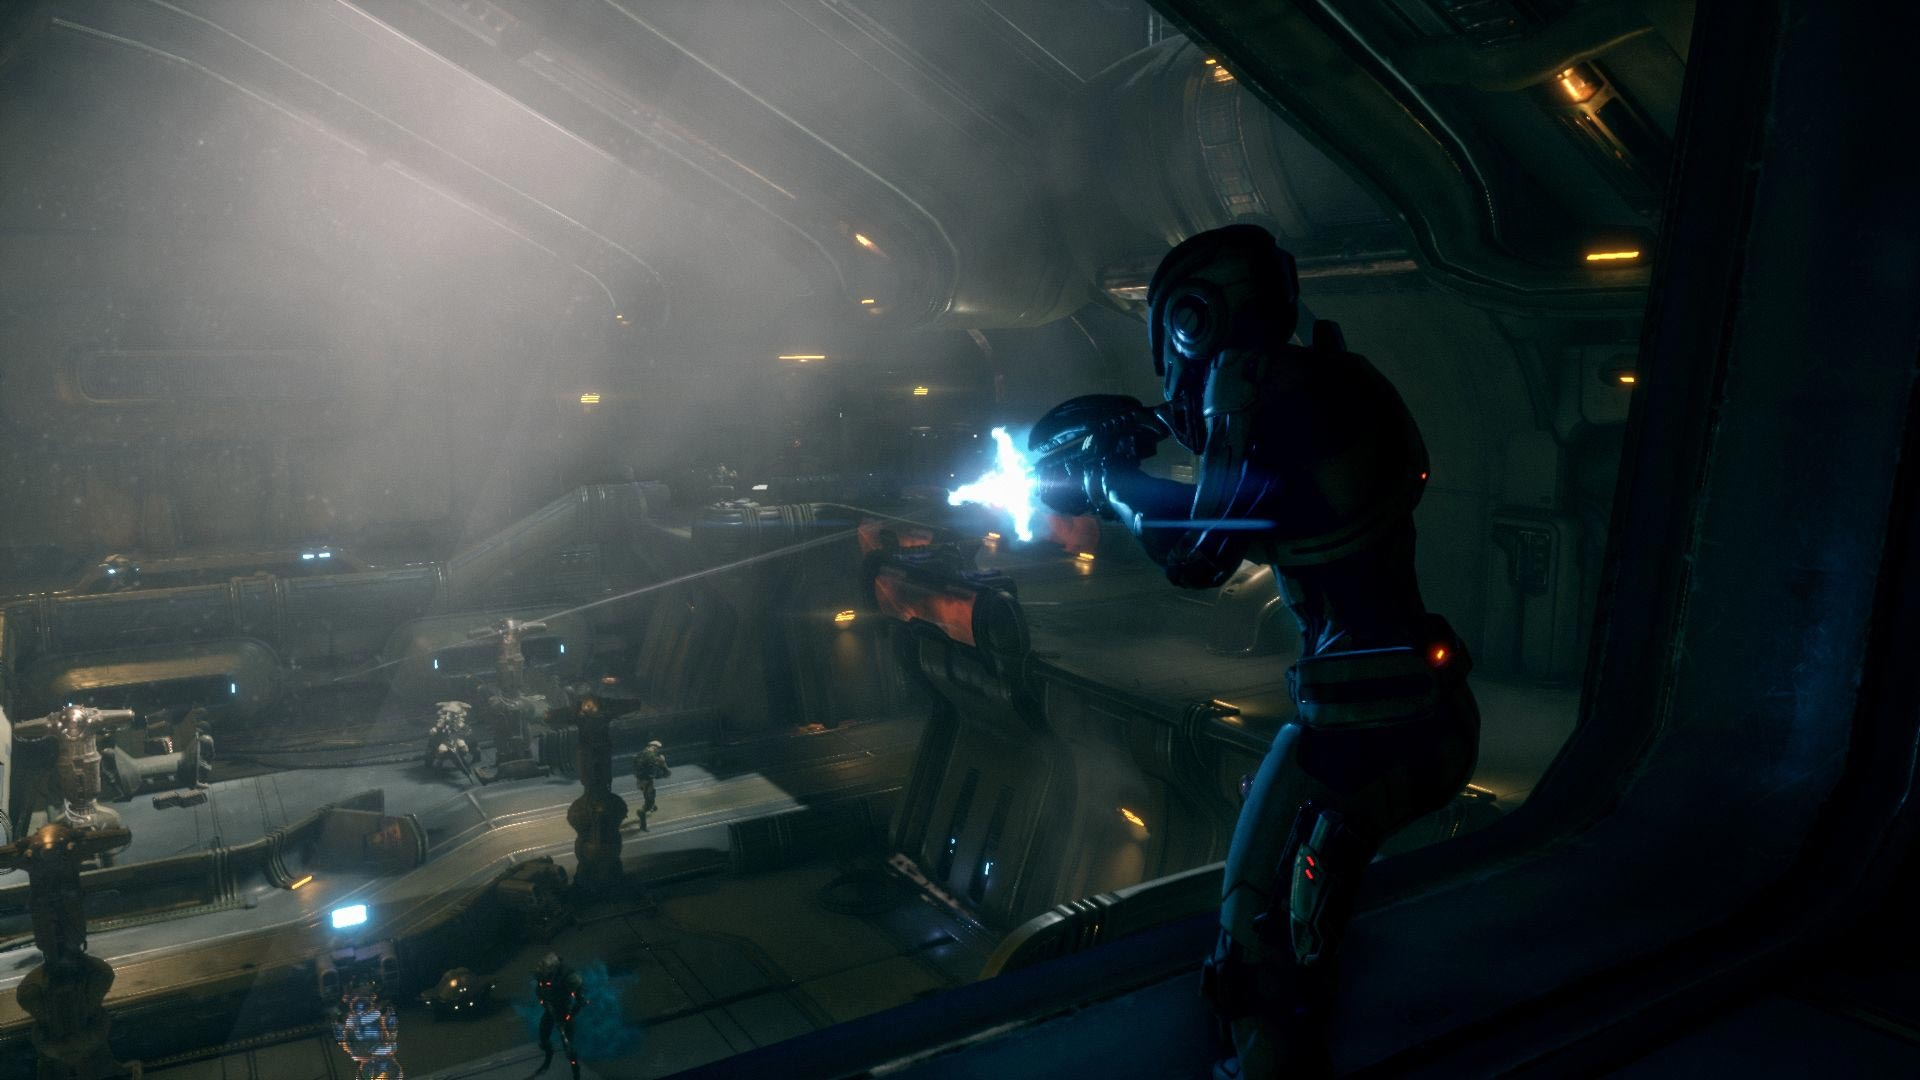 mass effect andromeda review - Mass Effect: Andromeda